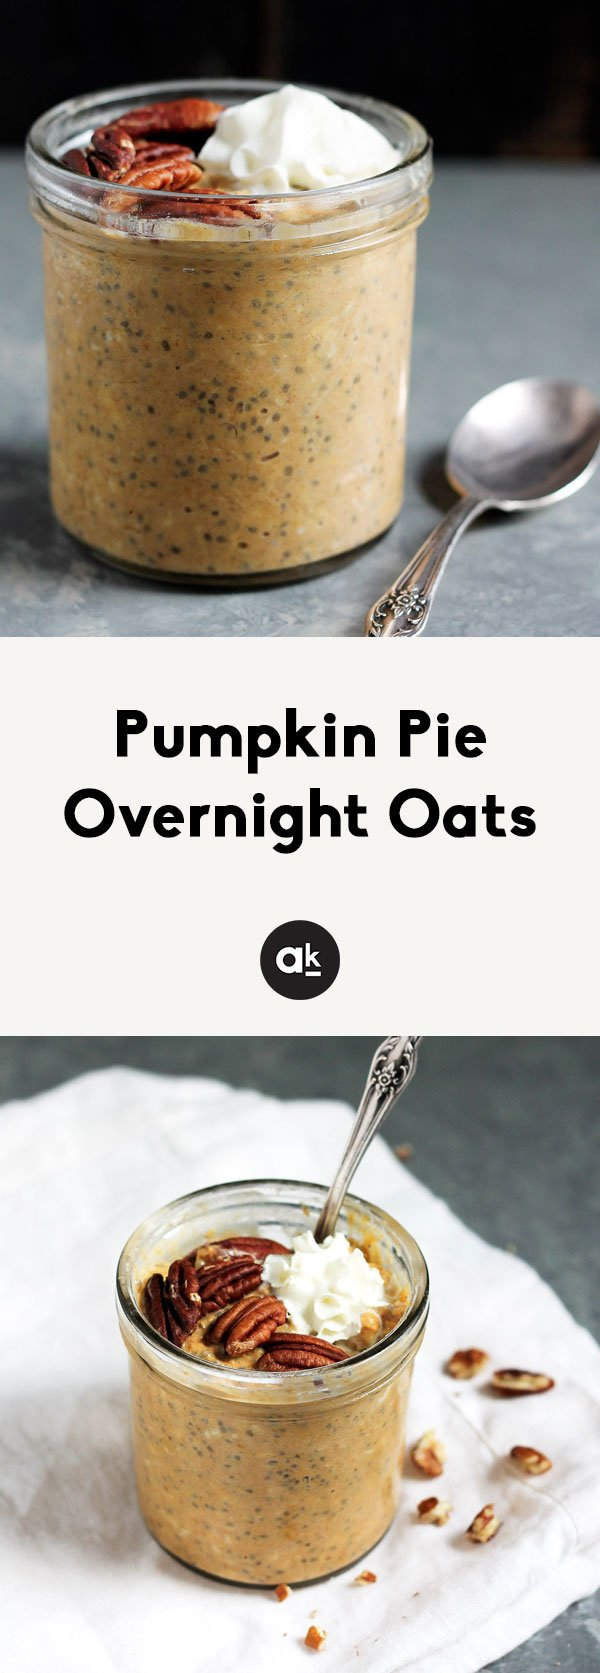 Thick and creamy pumpkin pie overnight oats with chia are such a healthy, yummy breakfast! Top with whatever your heart desires!